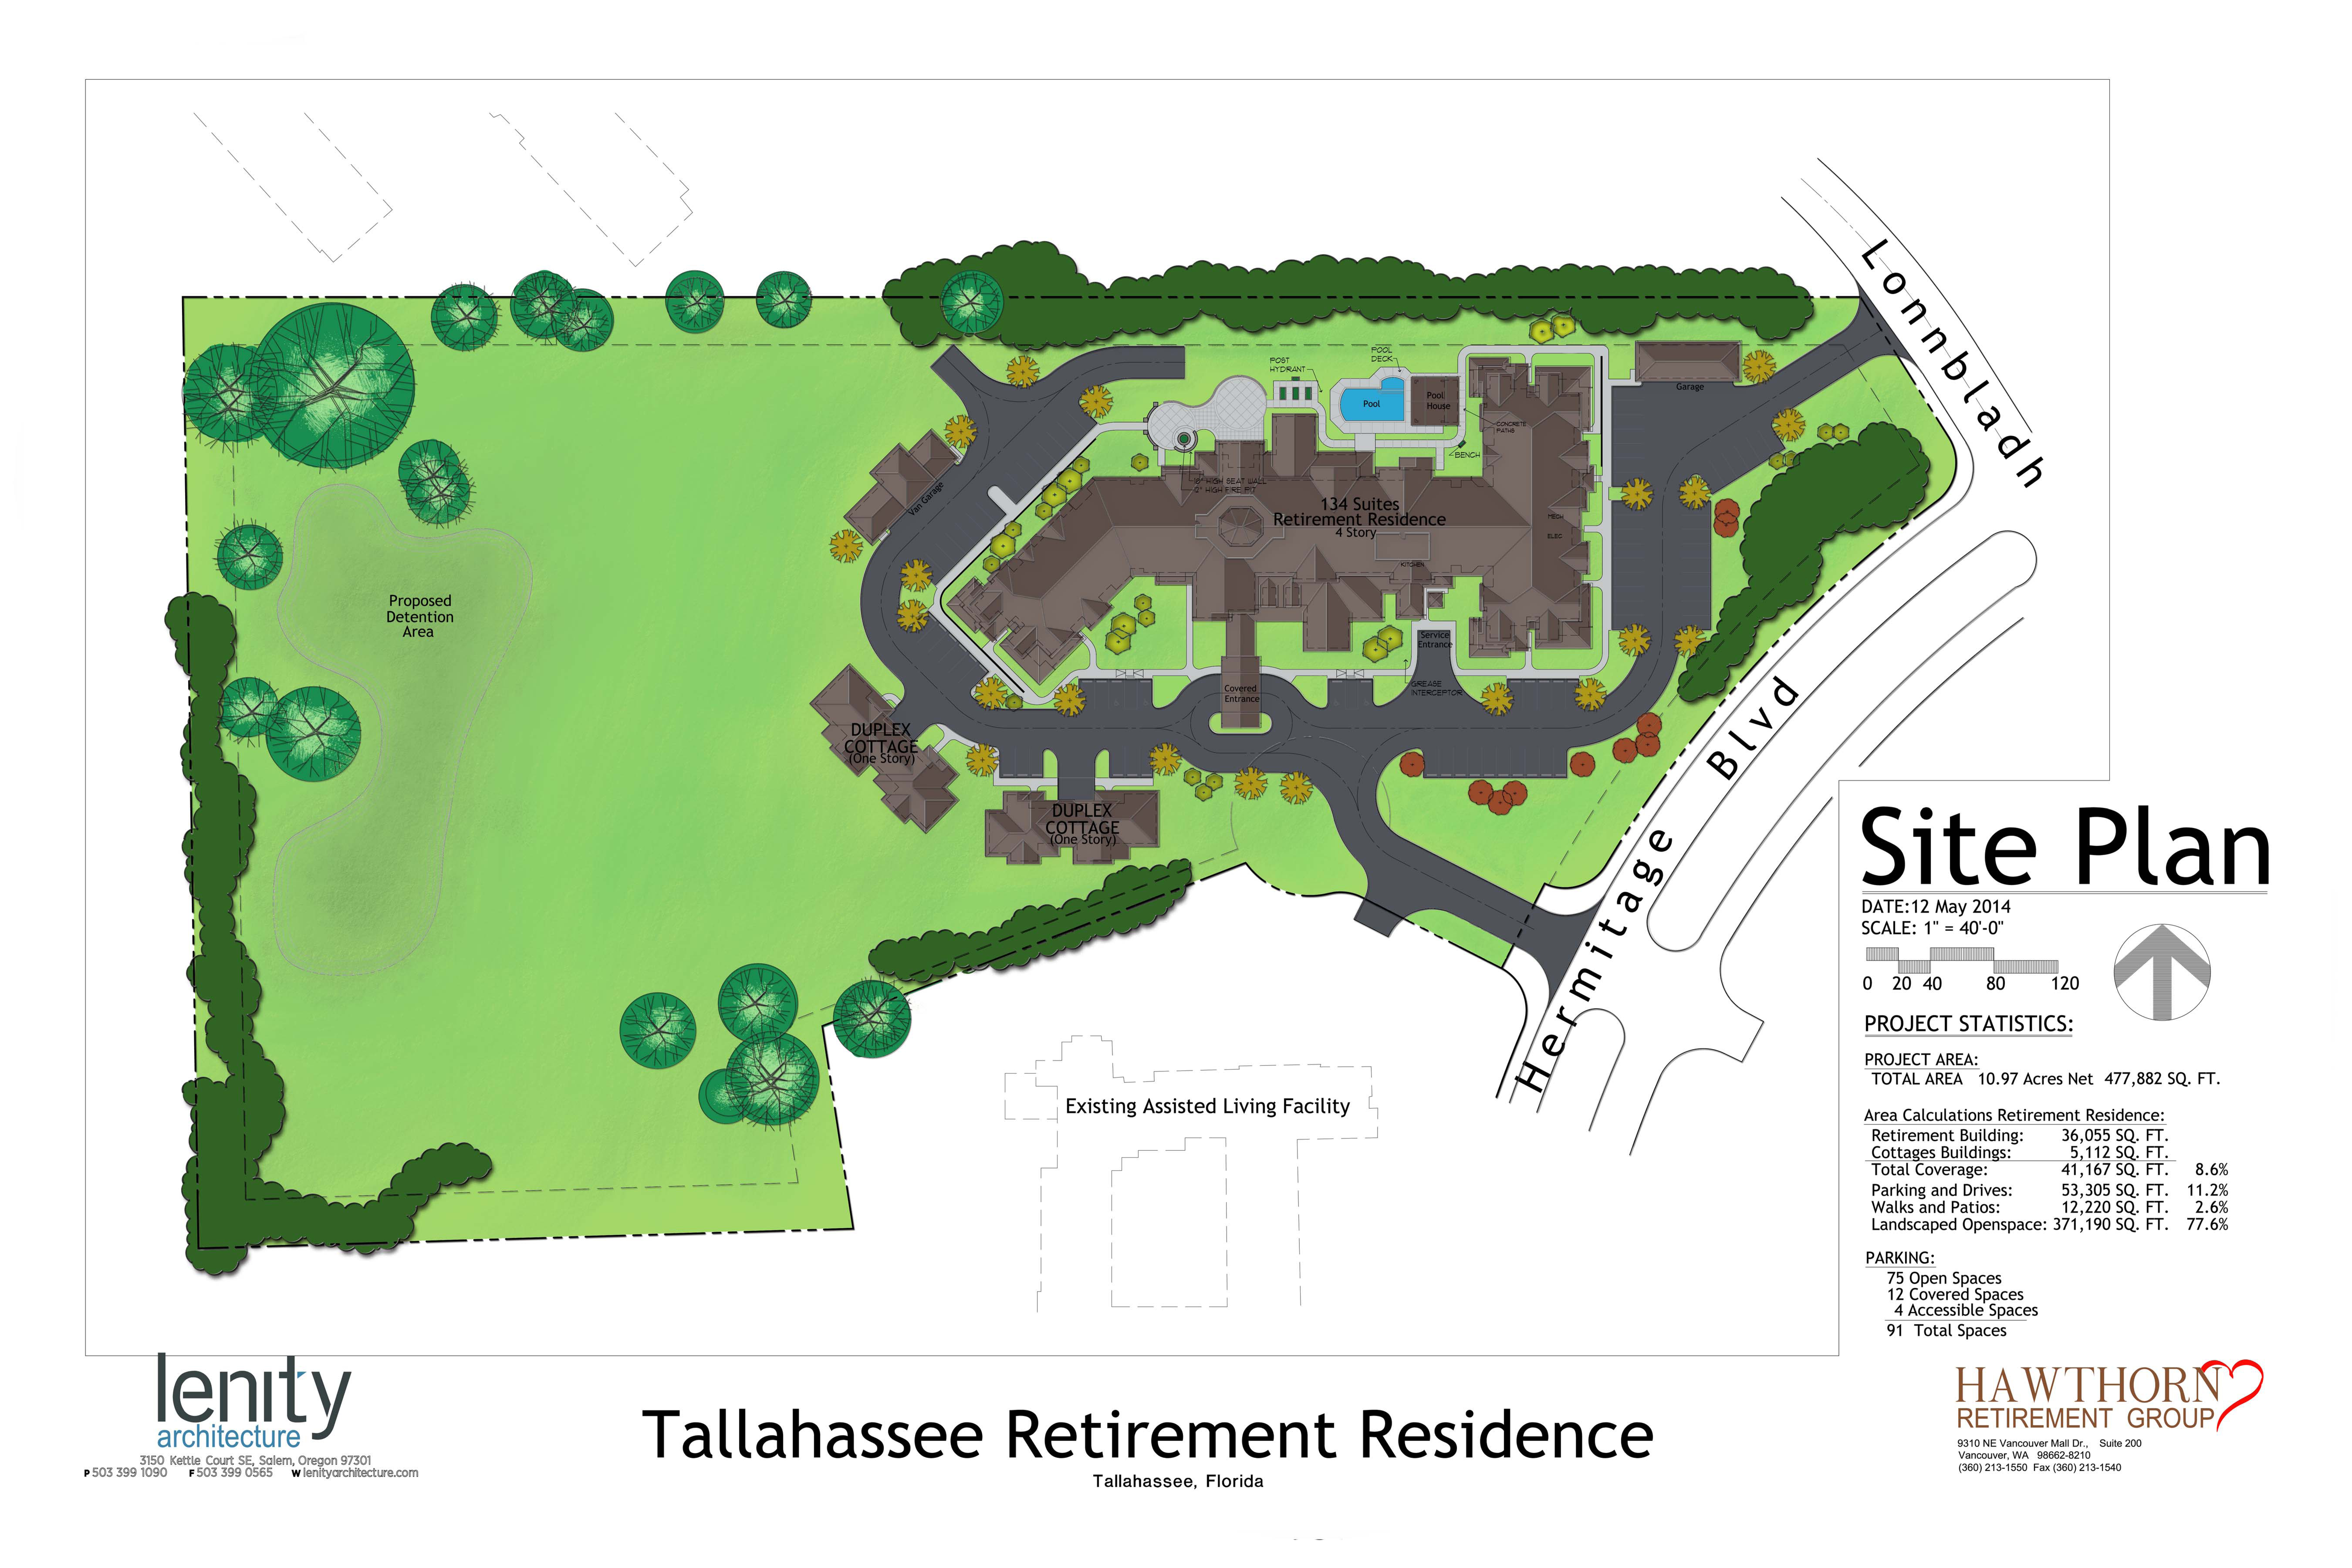 Tallahassee Site - Eric.psd